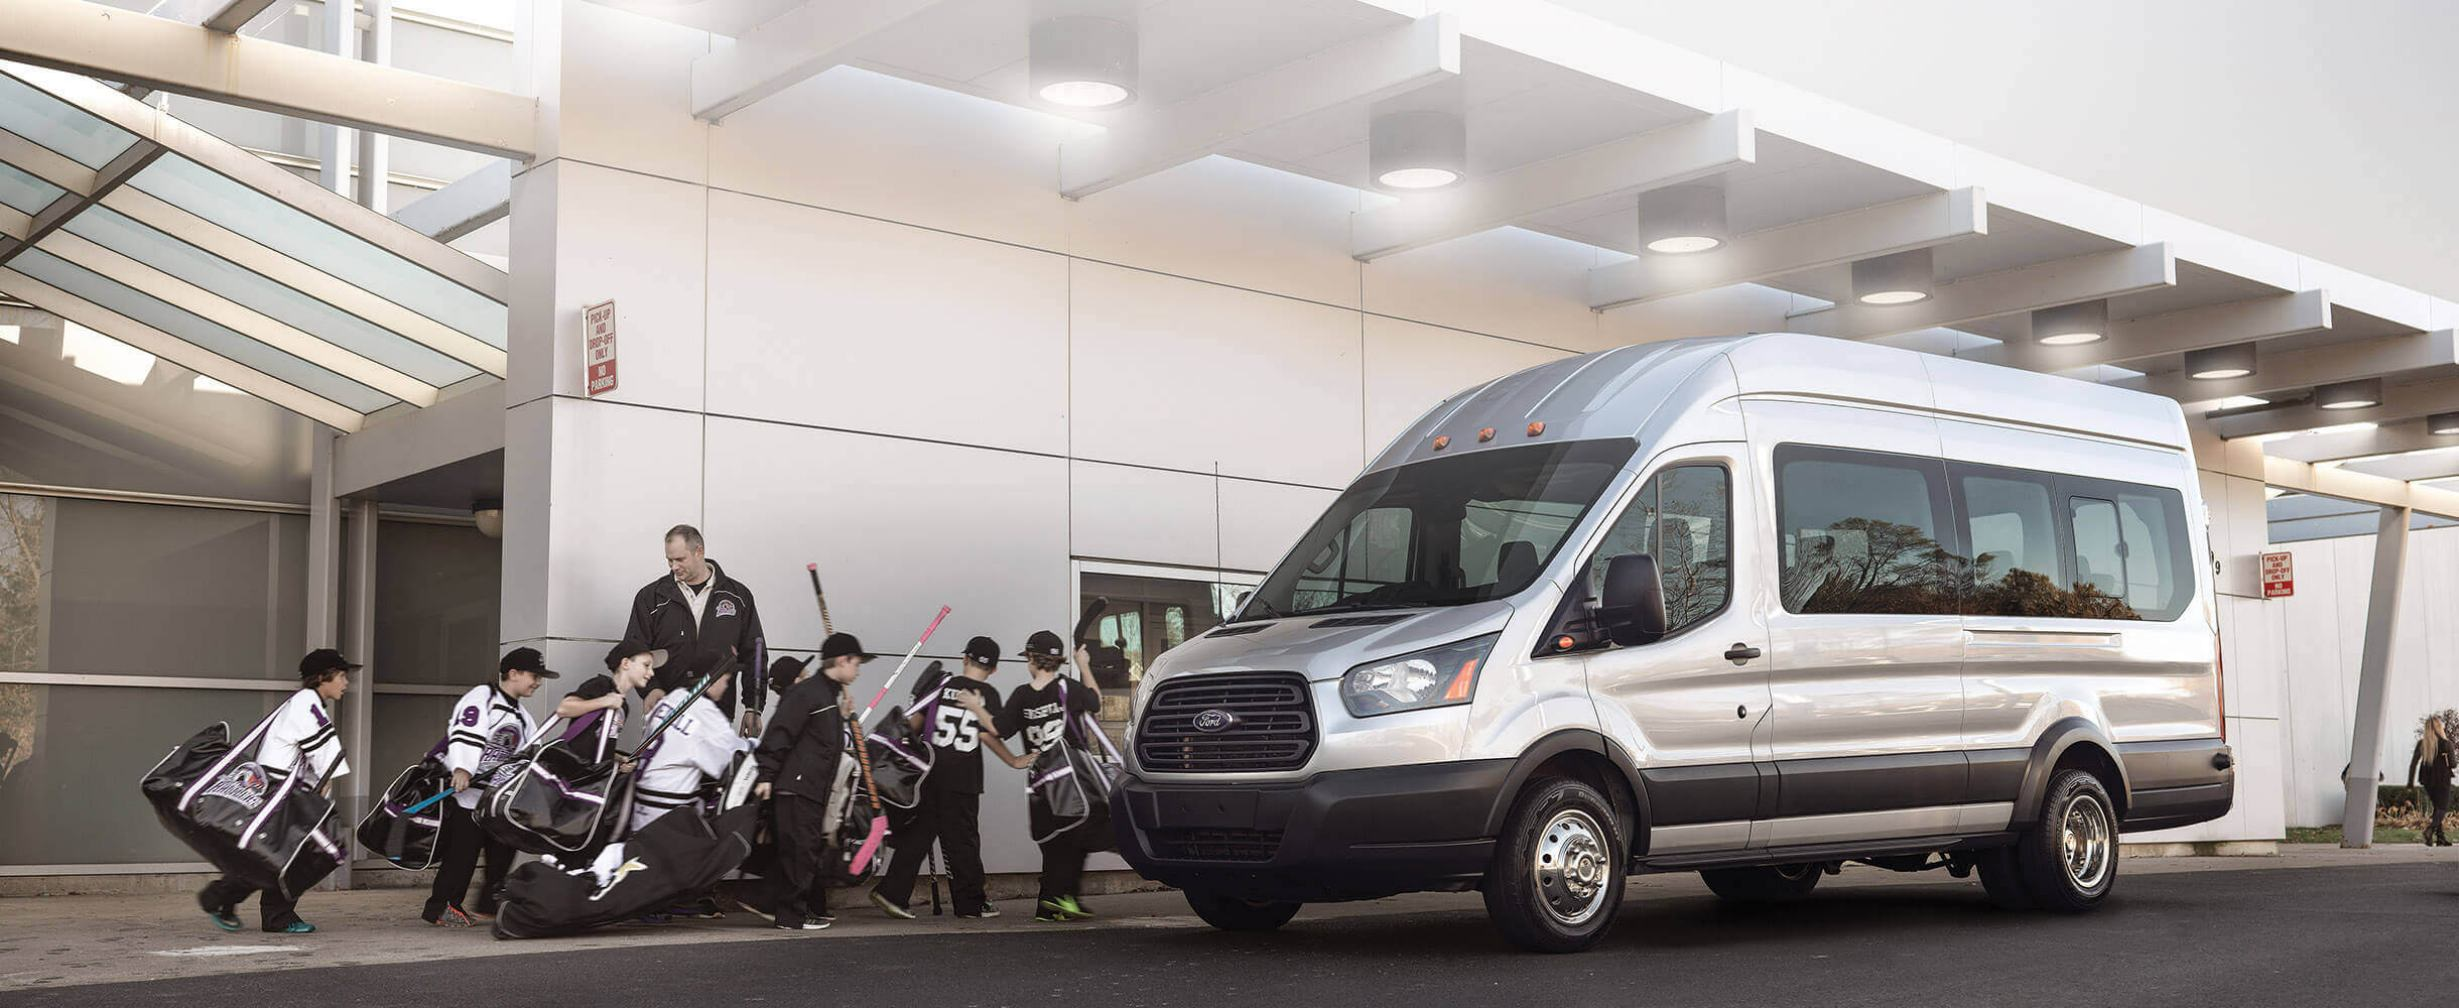 15 Passenger Van Rental Kansas City >> Save On 12 Passenger Van Rental Avis Rent A Car